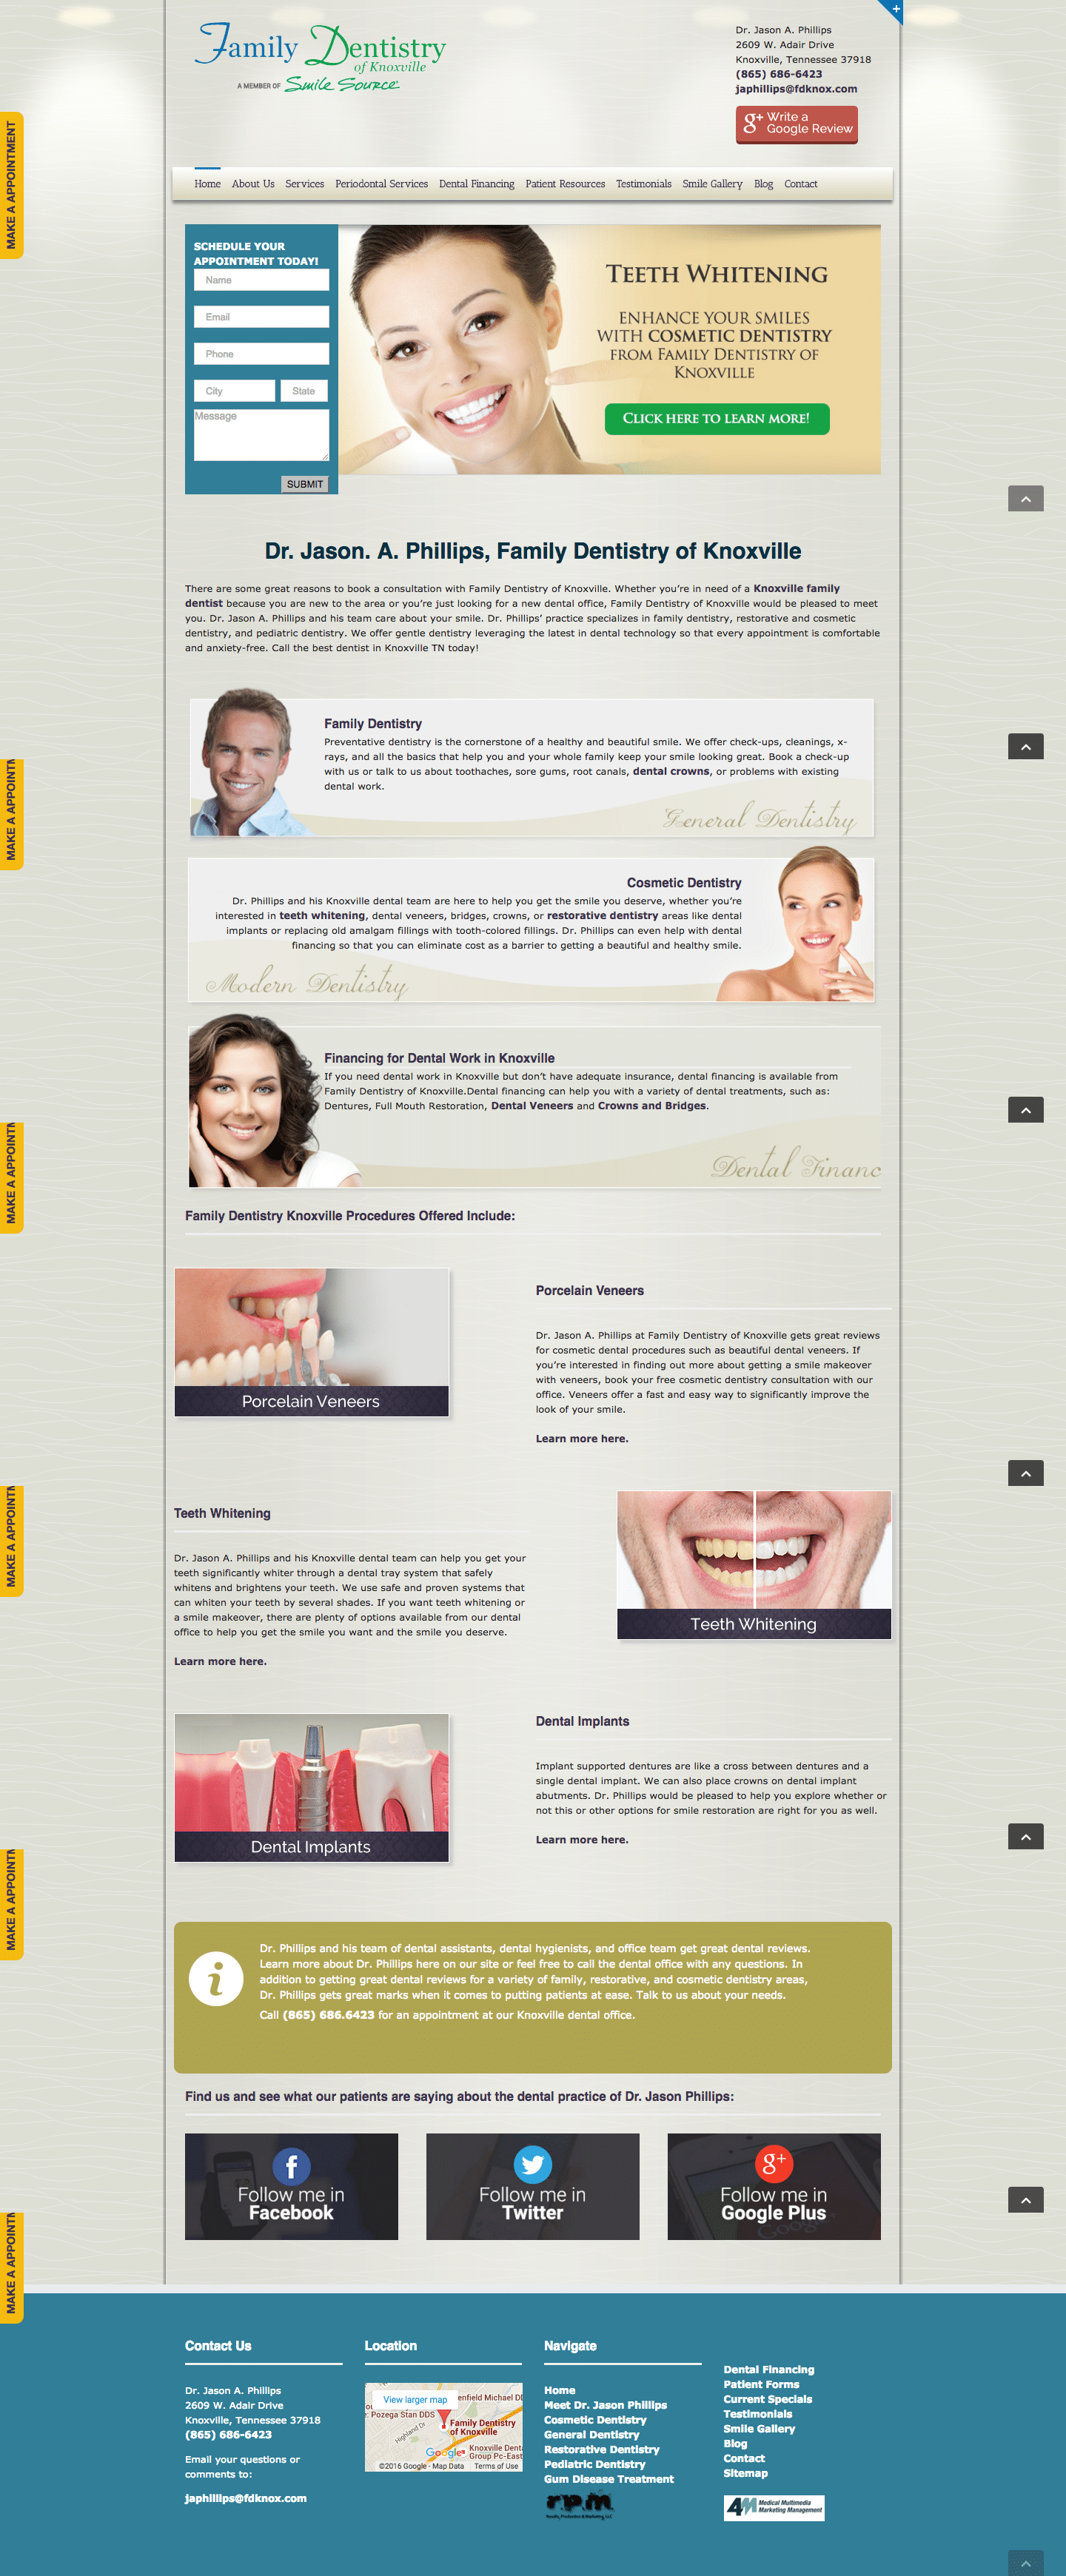 Website Family Dentistry Knoxville